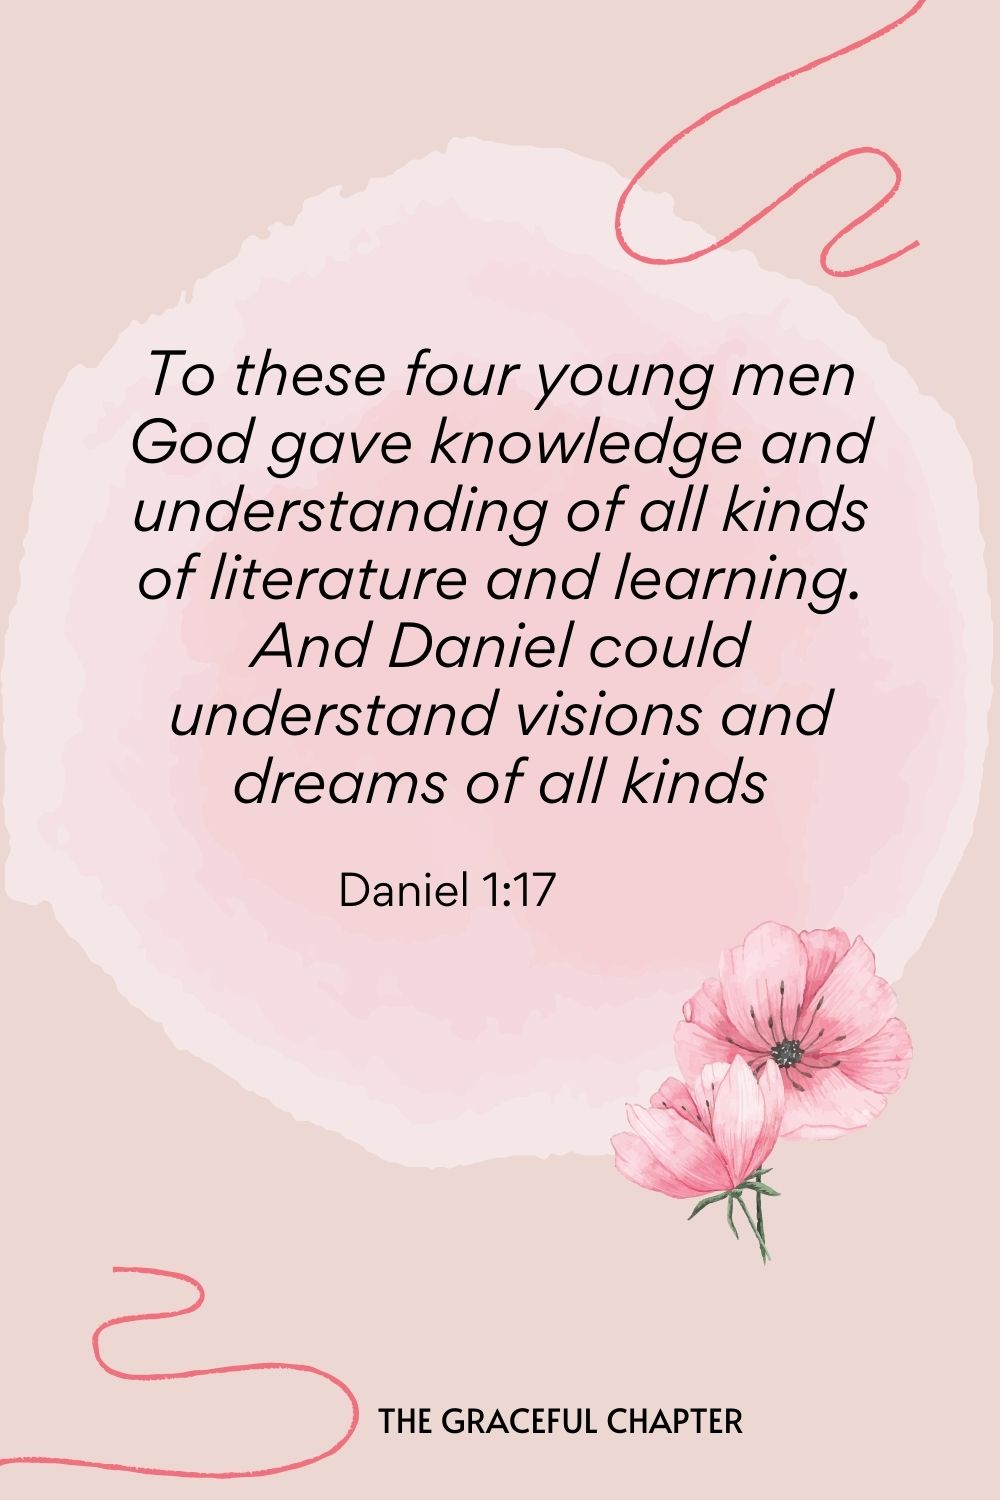 To these four young men, God gave knowledge and understanding of all kinds of literature and learning. And Daniel could understand visions and dreams of all kinds.  Daniel 1:17